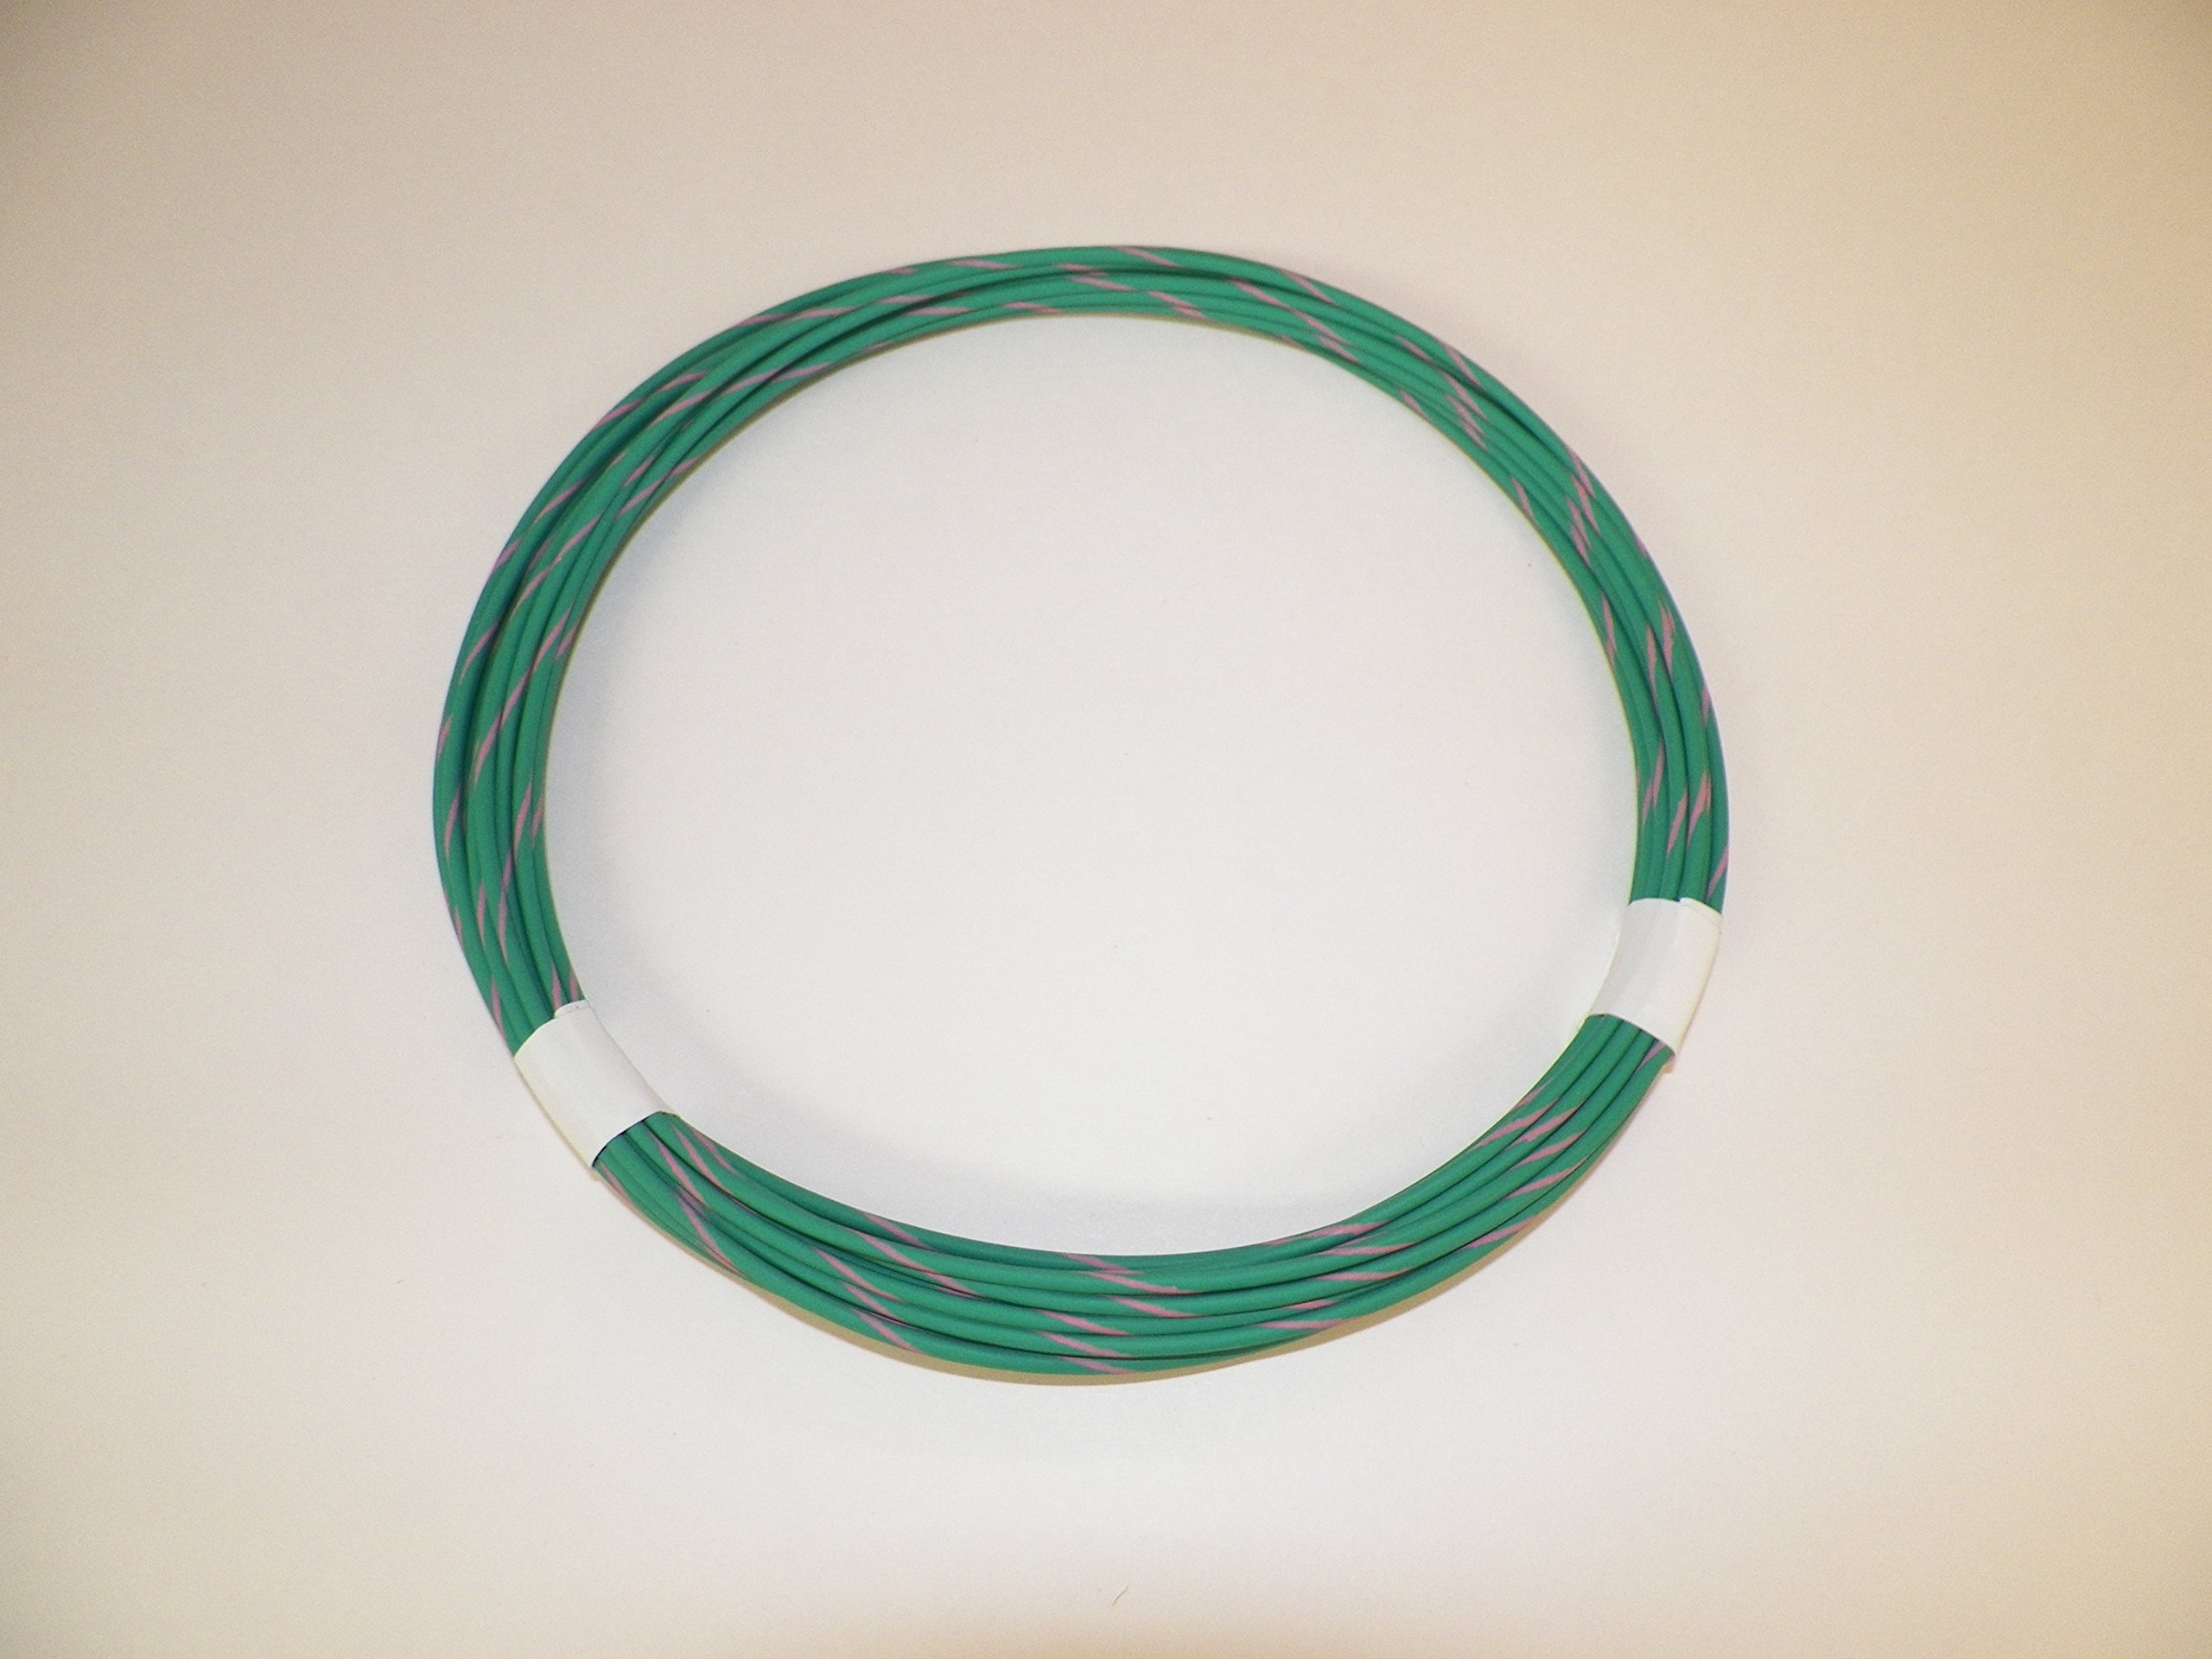 18 Ga Green/Pink Striped Automotive/General Purpose GXL Wire .94 O.D. 25' Superior Abrasion Resistance, High Heat, Resist grease,Oil, Gasoline,Acids